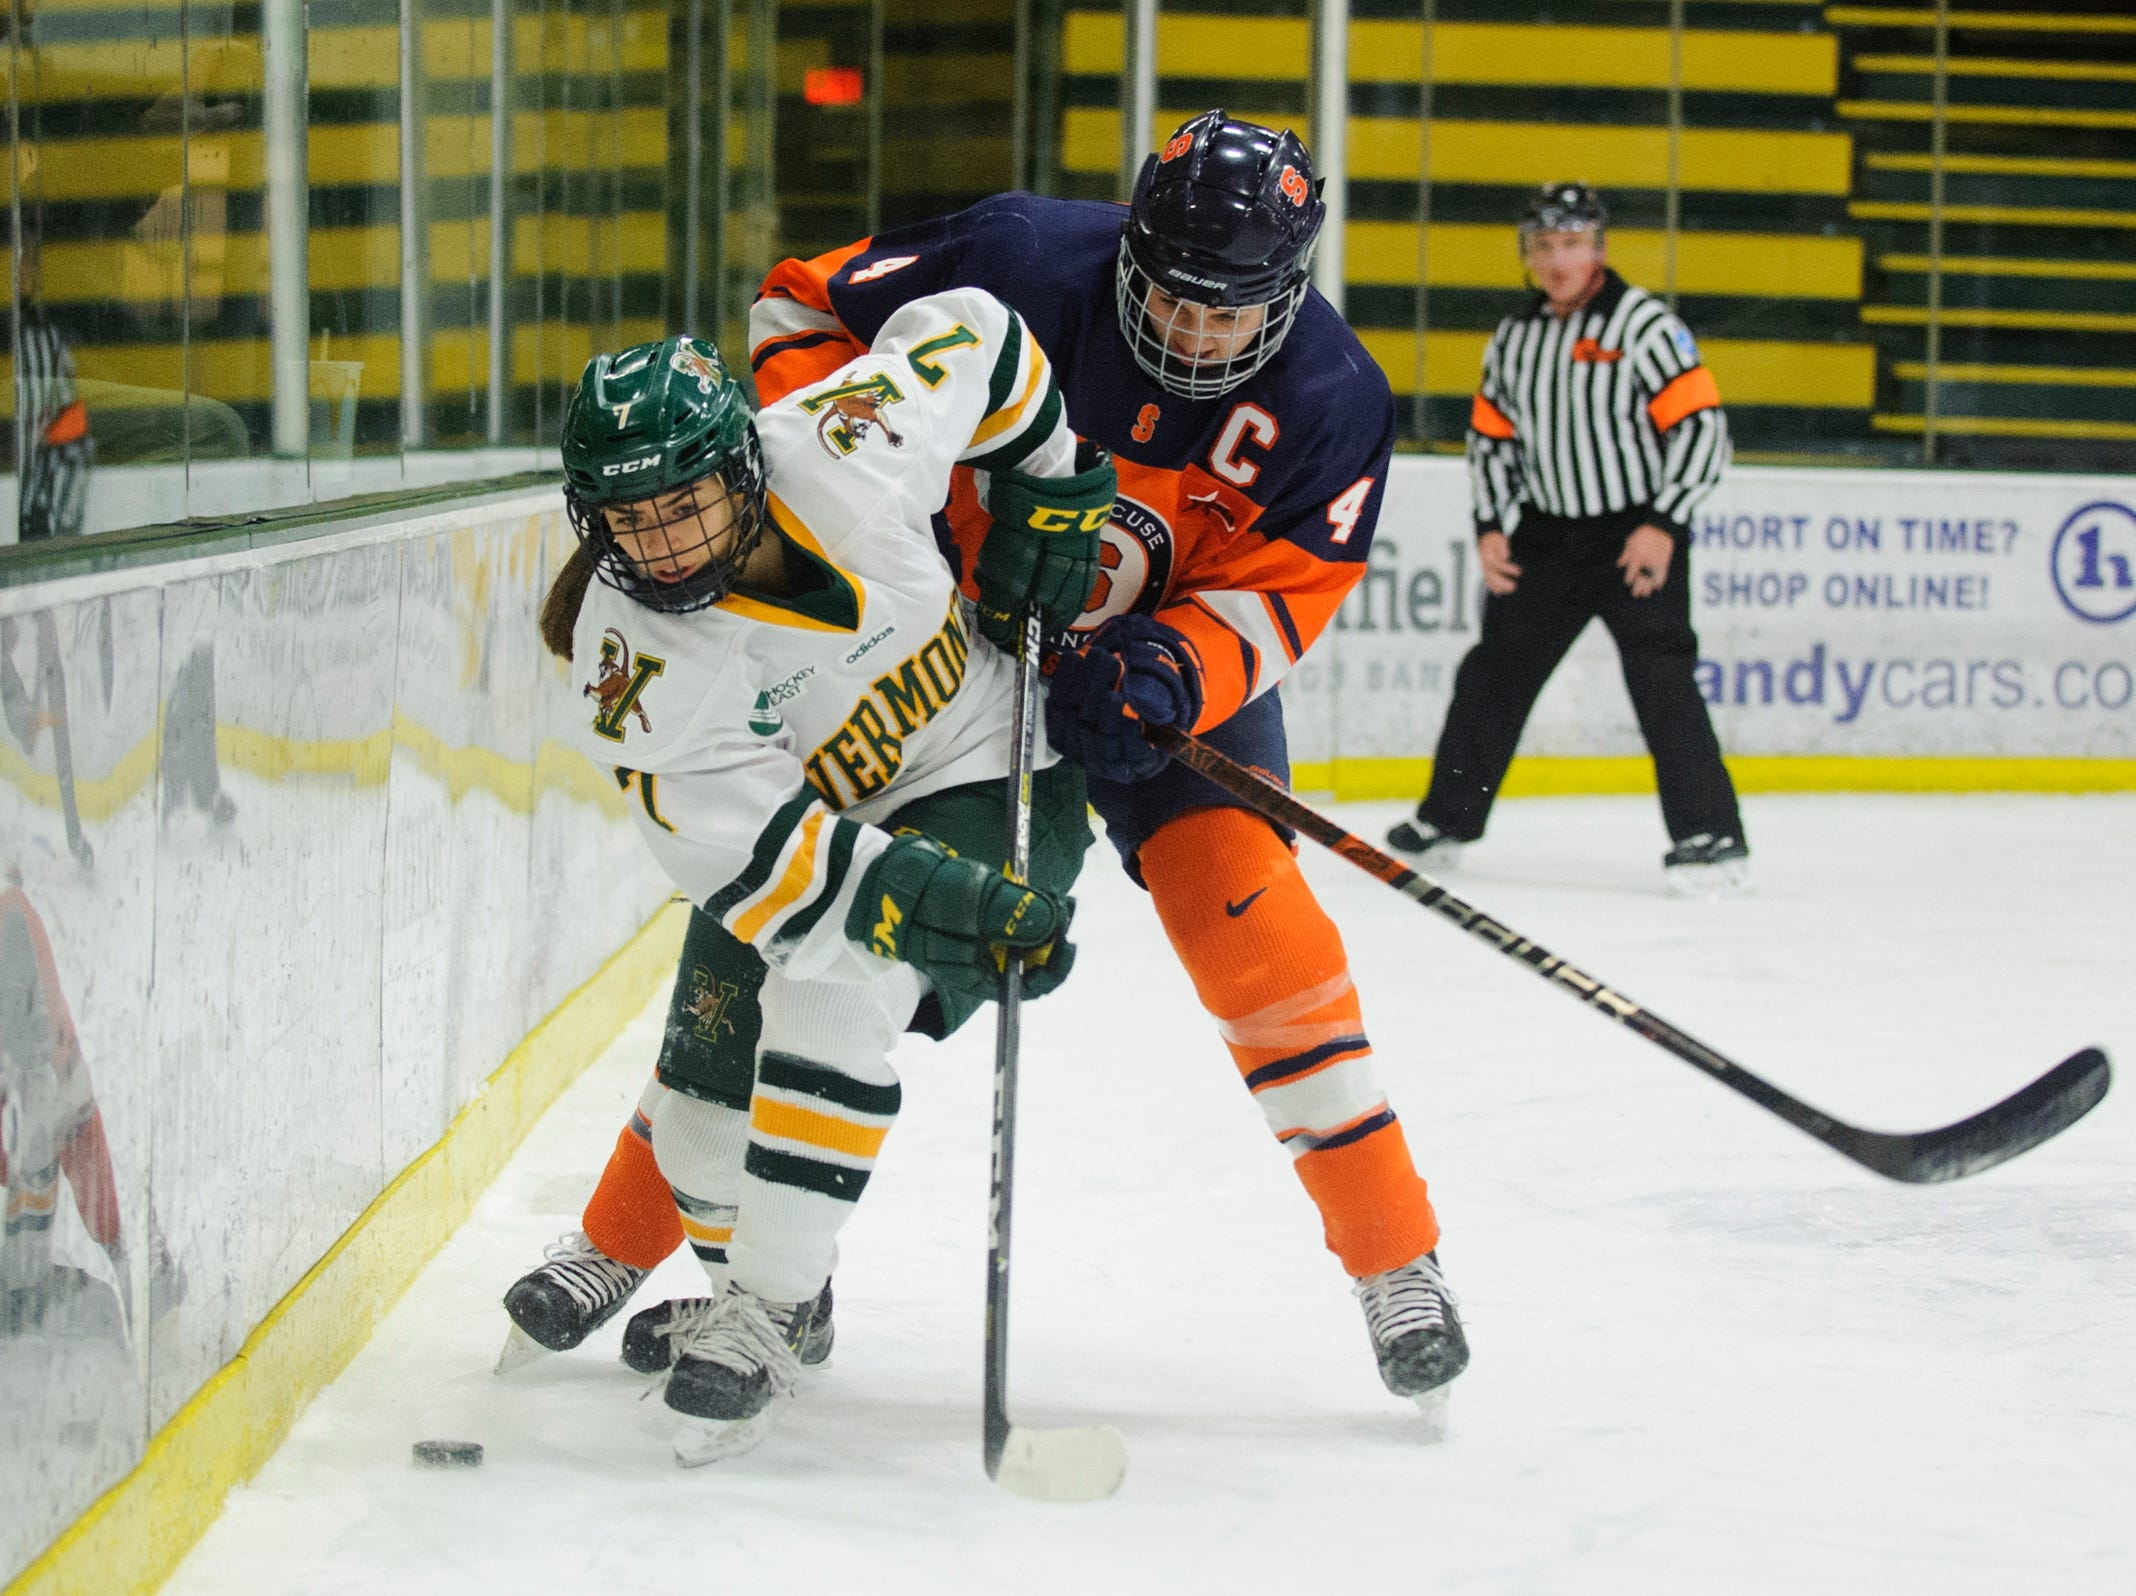 Vermont's Lristina Shanahan (7) battles for the puck with Syracuse's Lindsay Eastwood (4) during the women's hockey game between the Syracuse Orange and the Vermont Catamounts at Gutterson Field House on Friday night November 23, 2018 in Burlington.